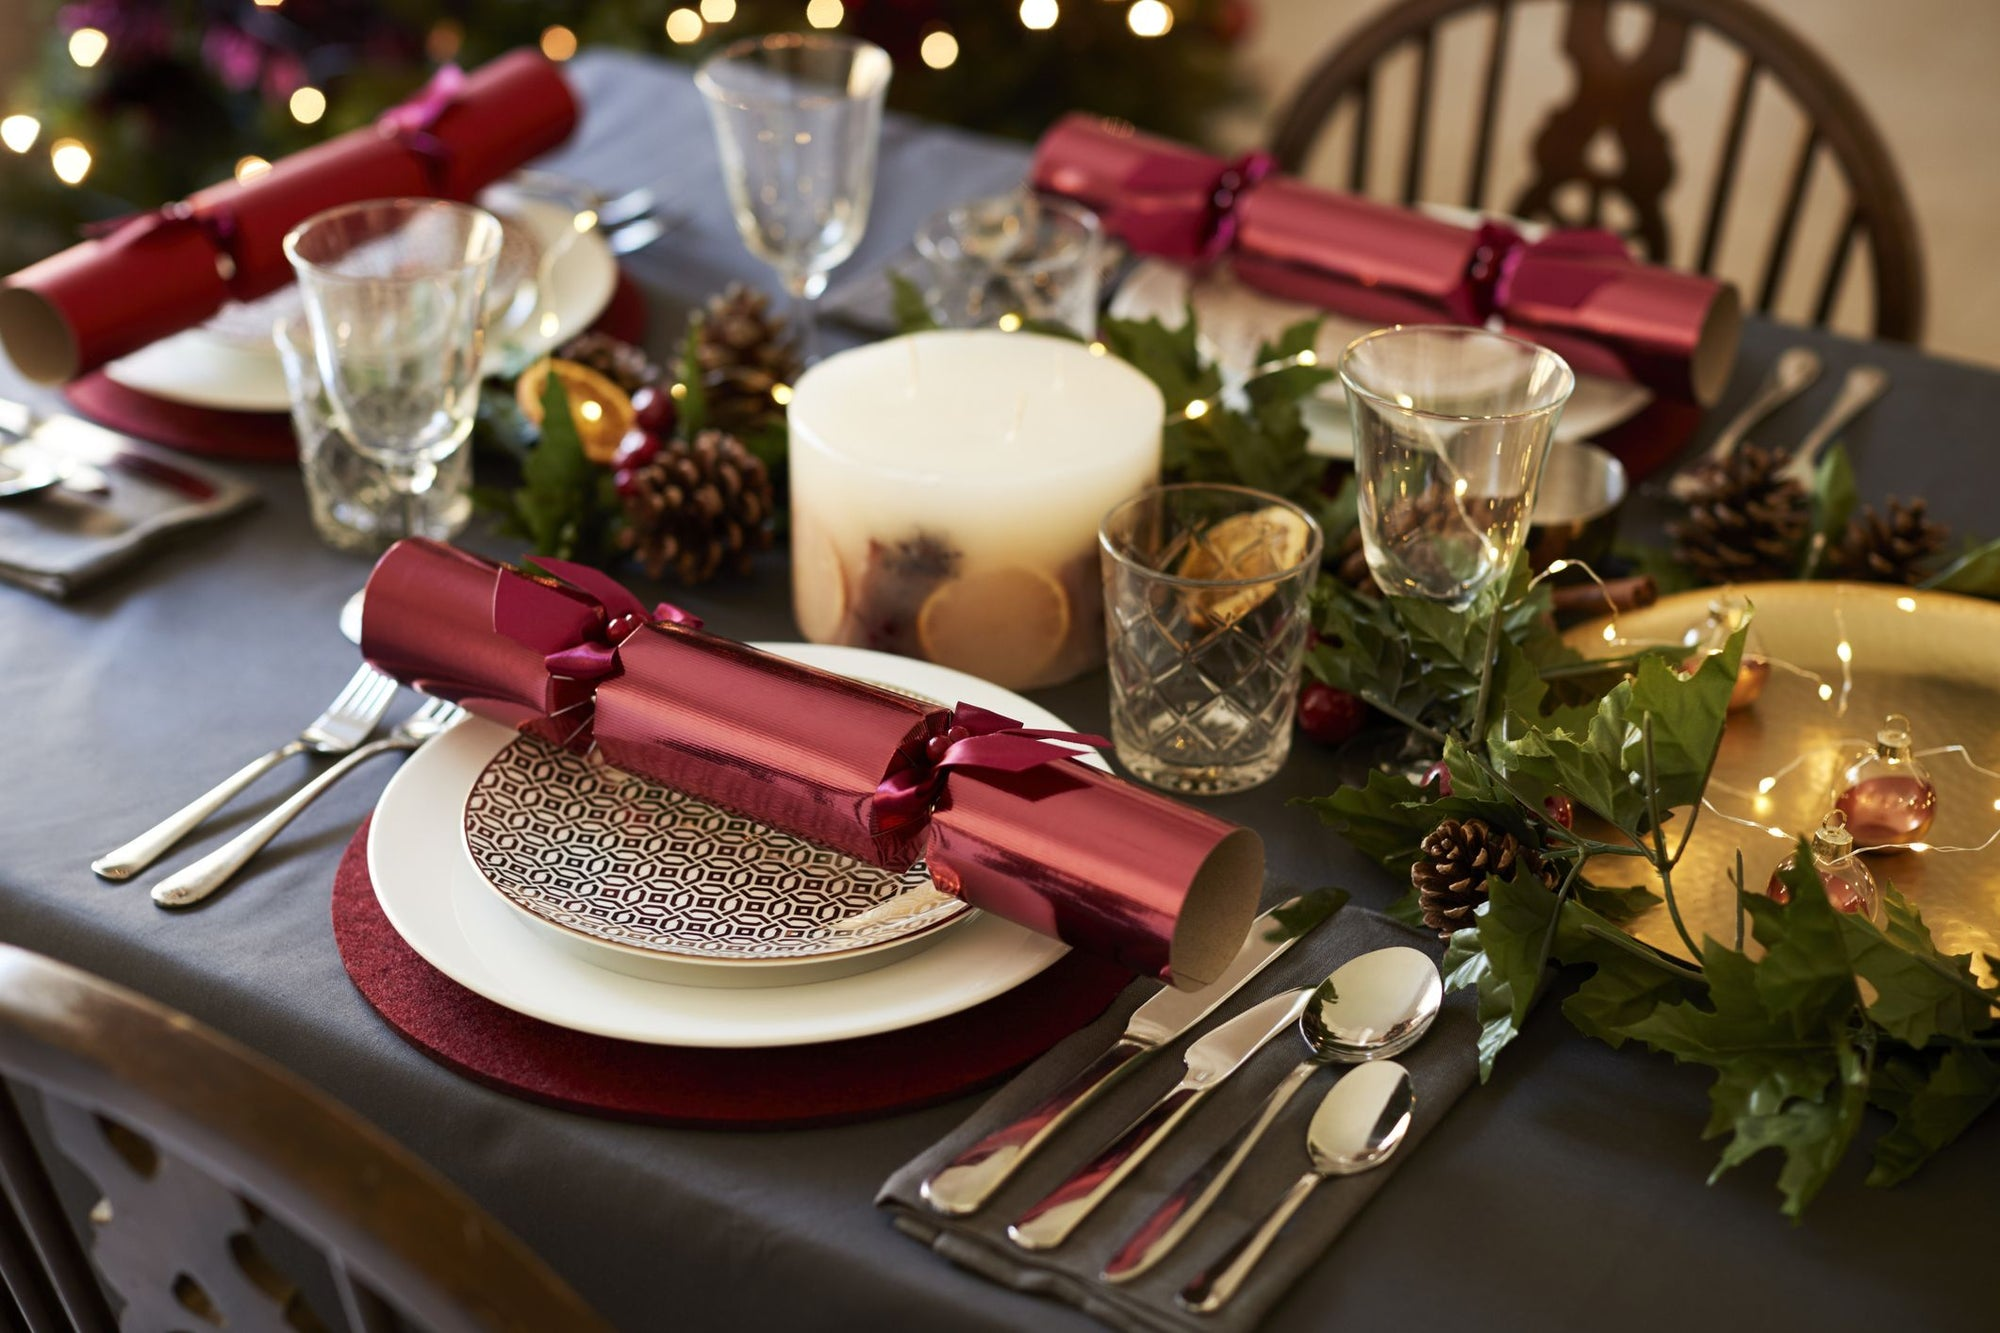 Christmas Table Decorations & Place Settings